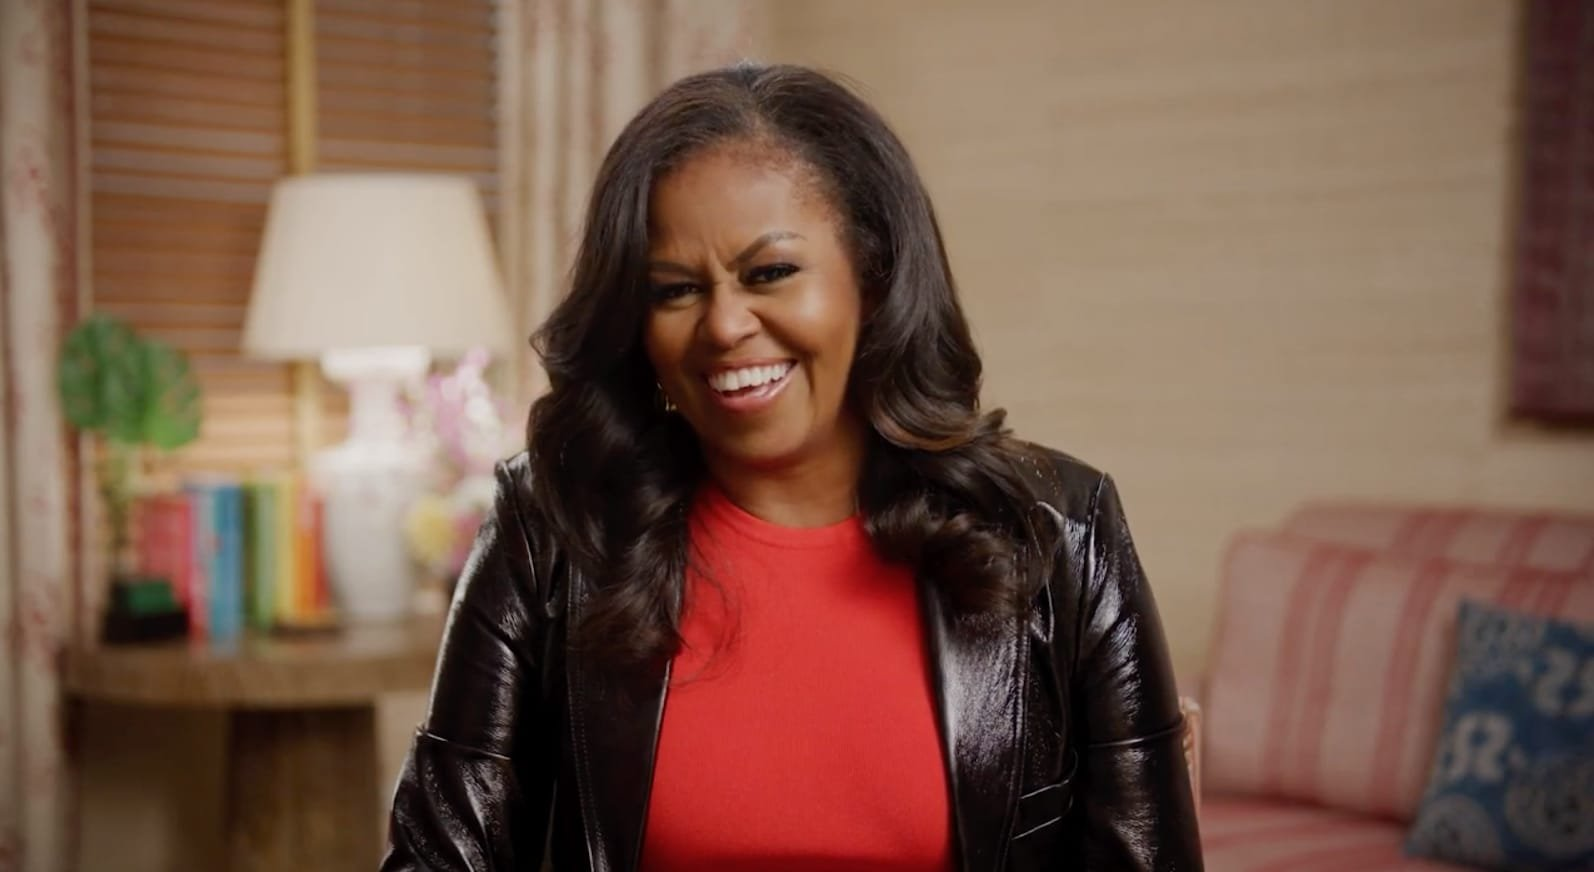 Michelle Obama reacts to 'sick' Kimmel question about sex with Barack